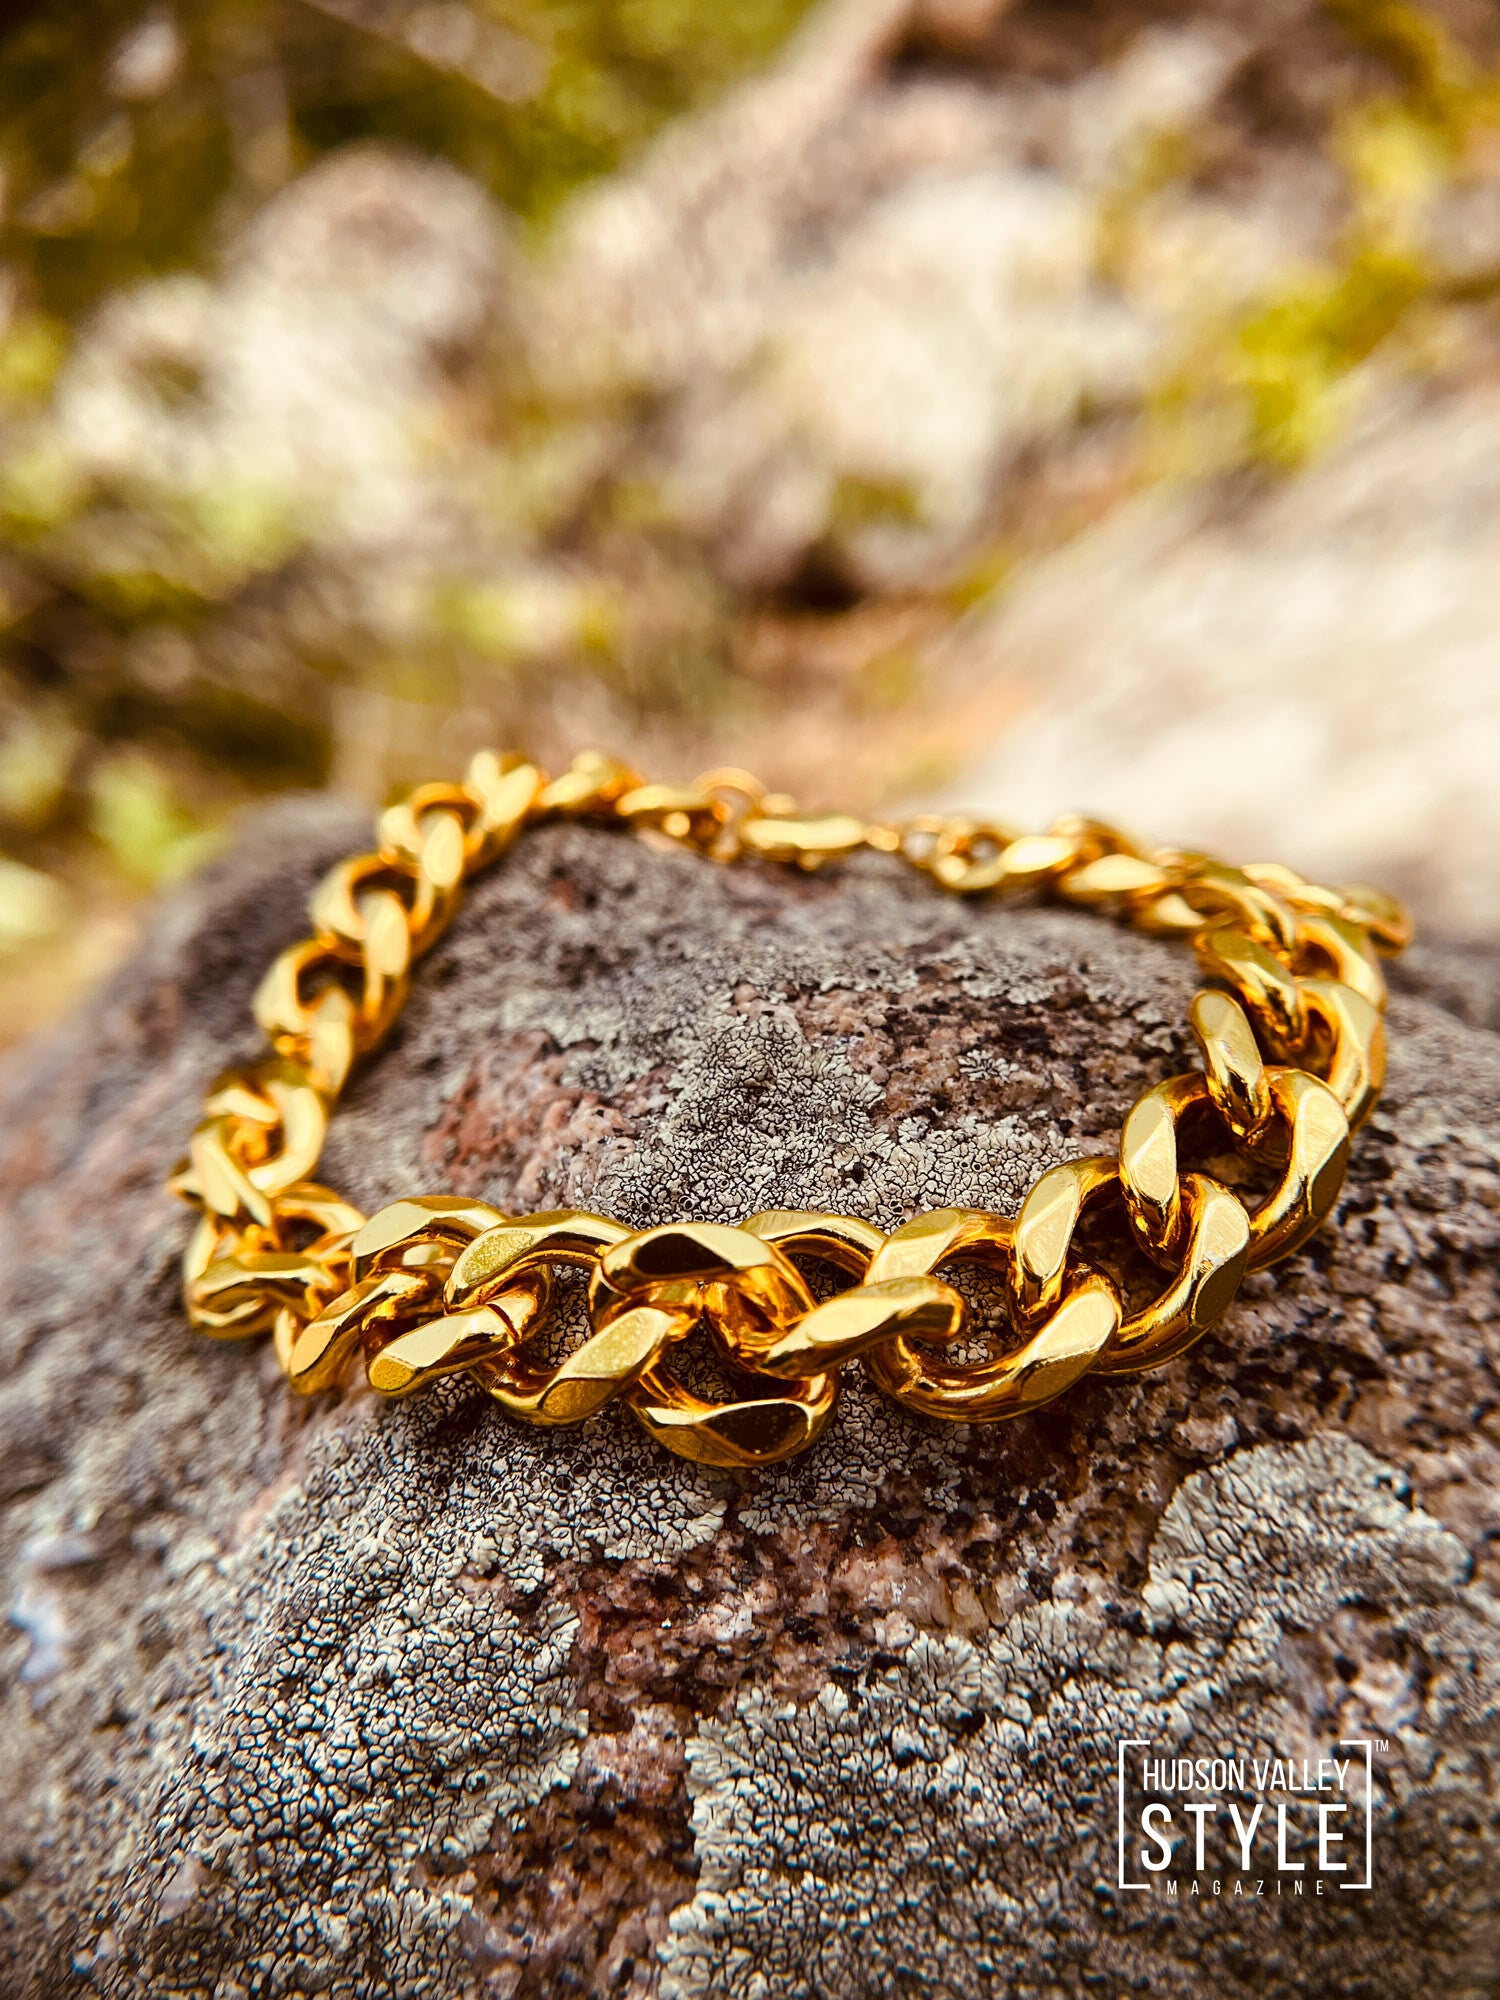 The next one on our list is Royal Gold Chain Bracelet by HARD NEW YORK that comes in 3 Chain Sizes. From thin to medium to chunky, this Stainless Steel IP Plated bracelet is a trendy and affordable gift idea for your dad this Father's Day. It is available to be shipped out today from hardnewyork.com for just $47 and free shipping.